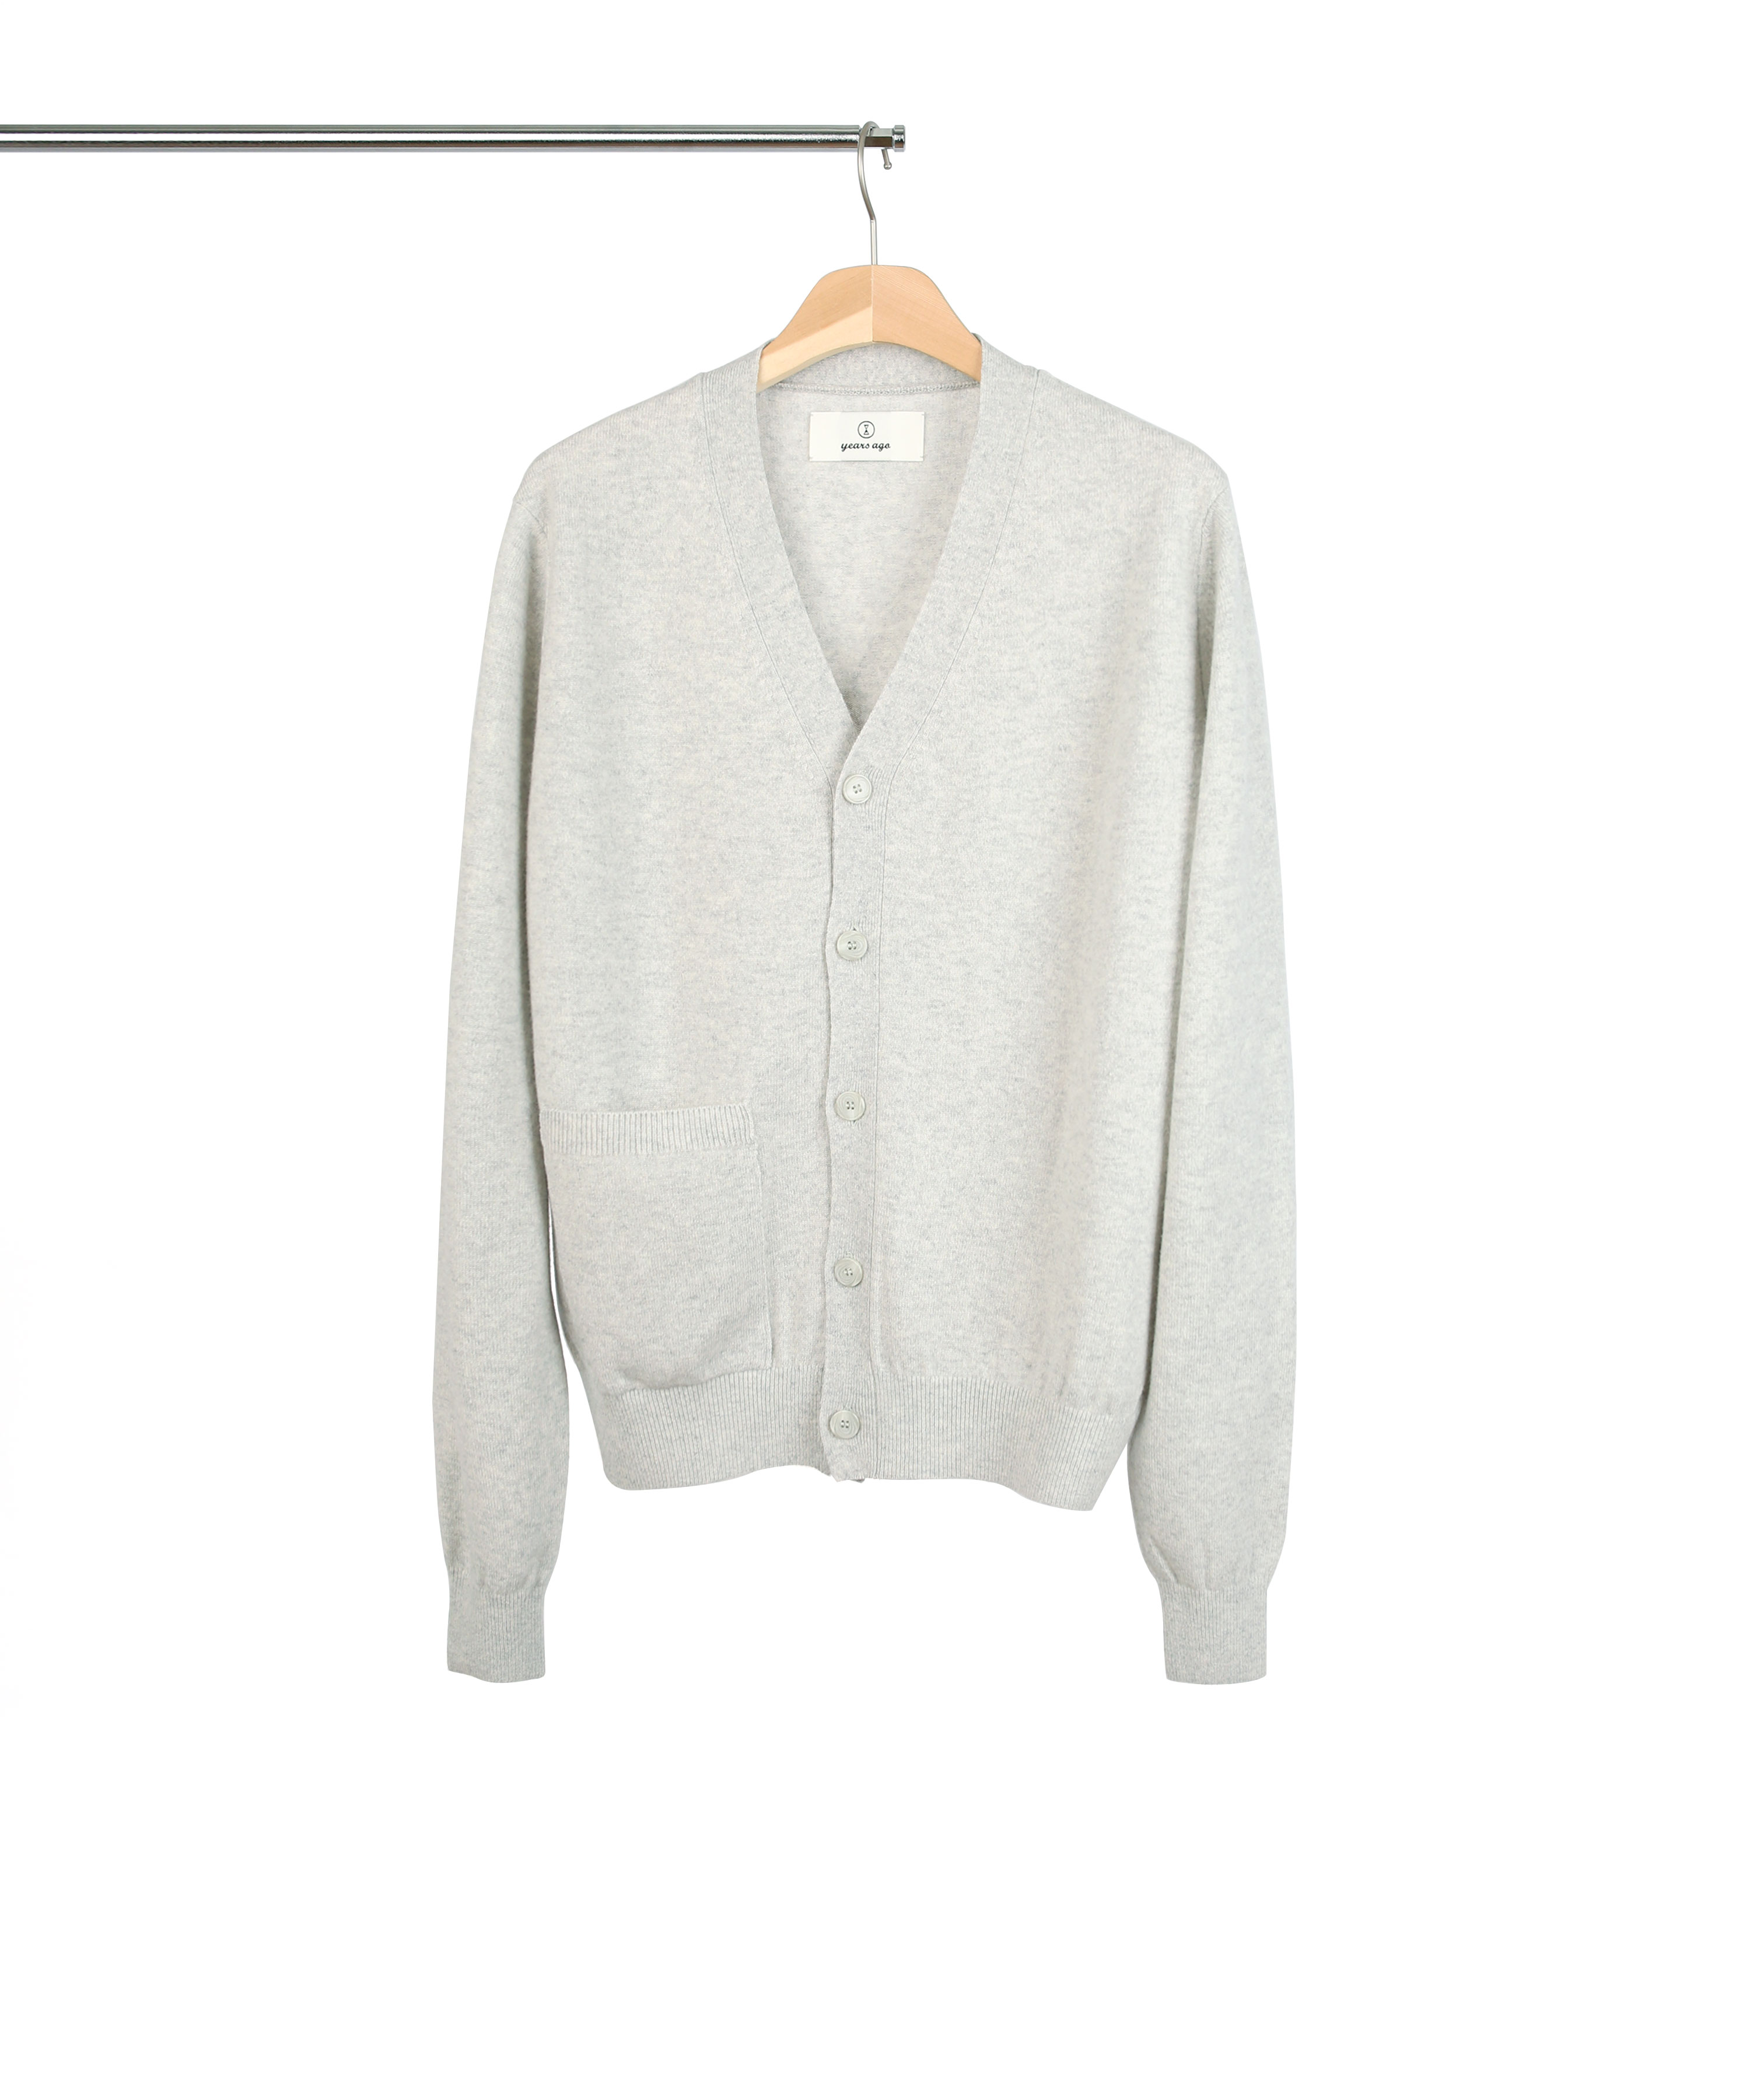 LIGHT MELANGE GREY ROVER WOOL CARDIGAN 02